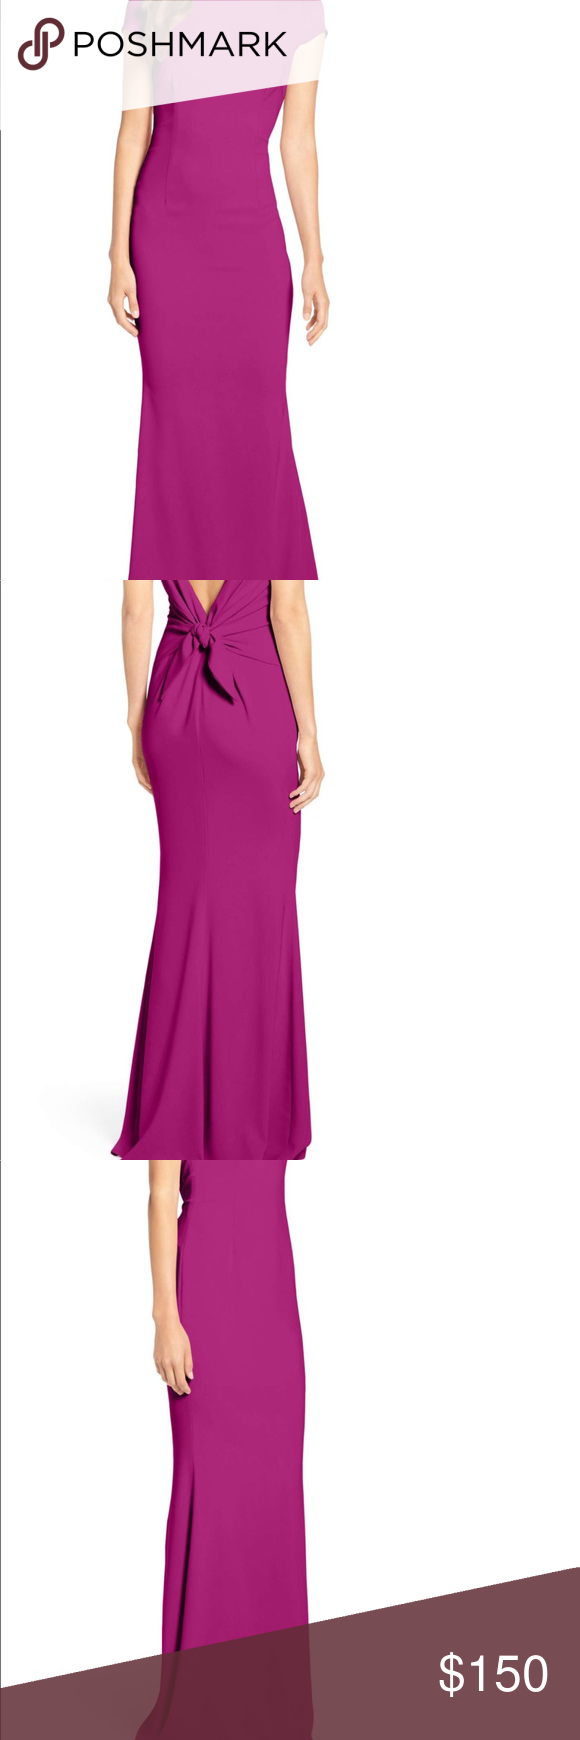 Katie May Plunge Knot Back Gown Plunging back gathered in a chic ...